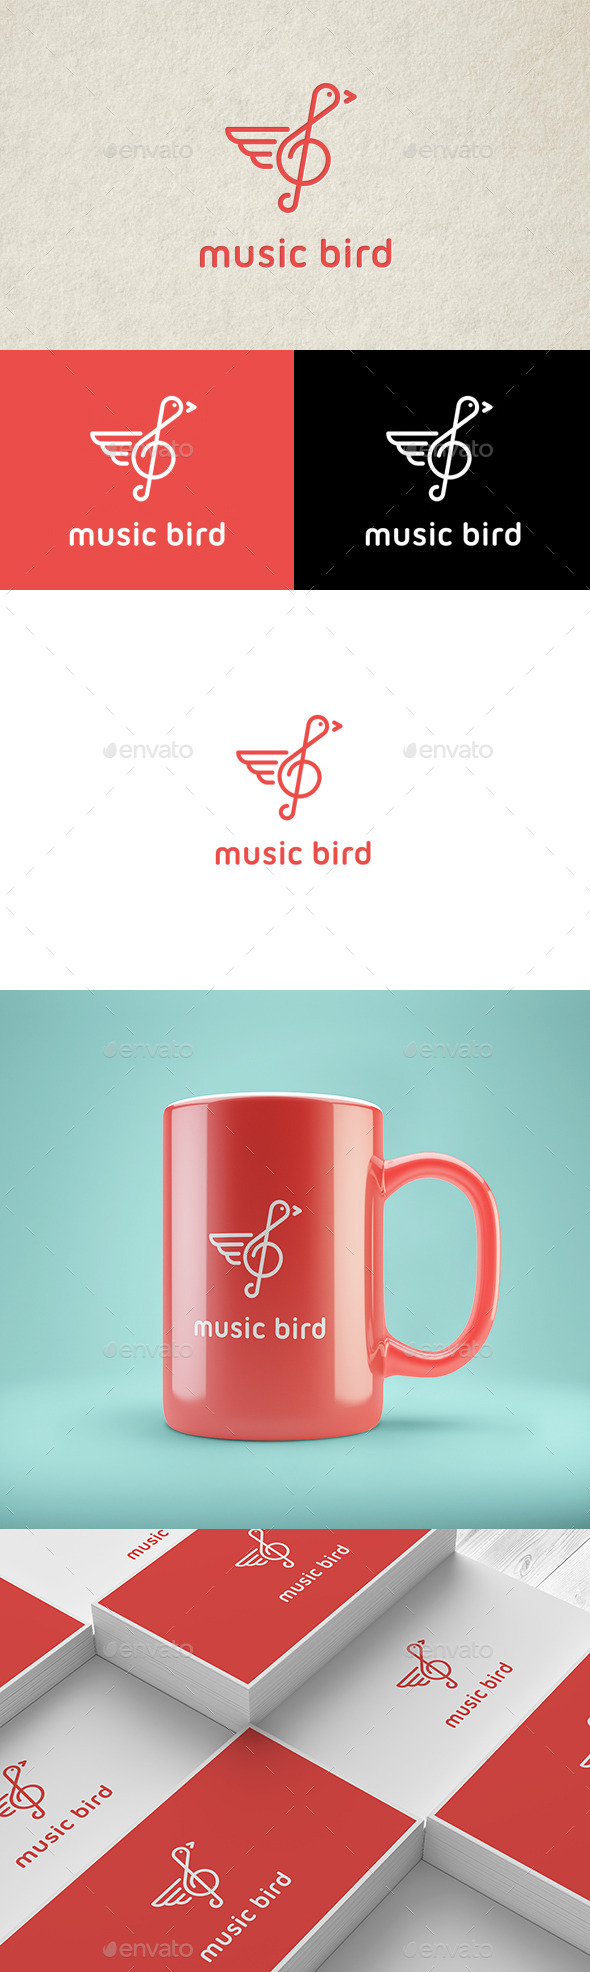 Music Bird Logo - Animals Logo Templates